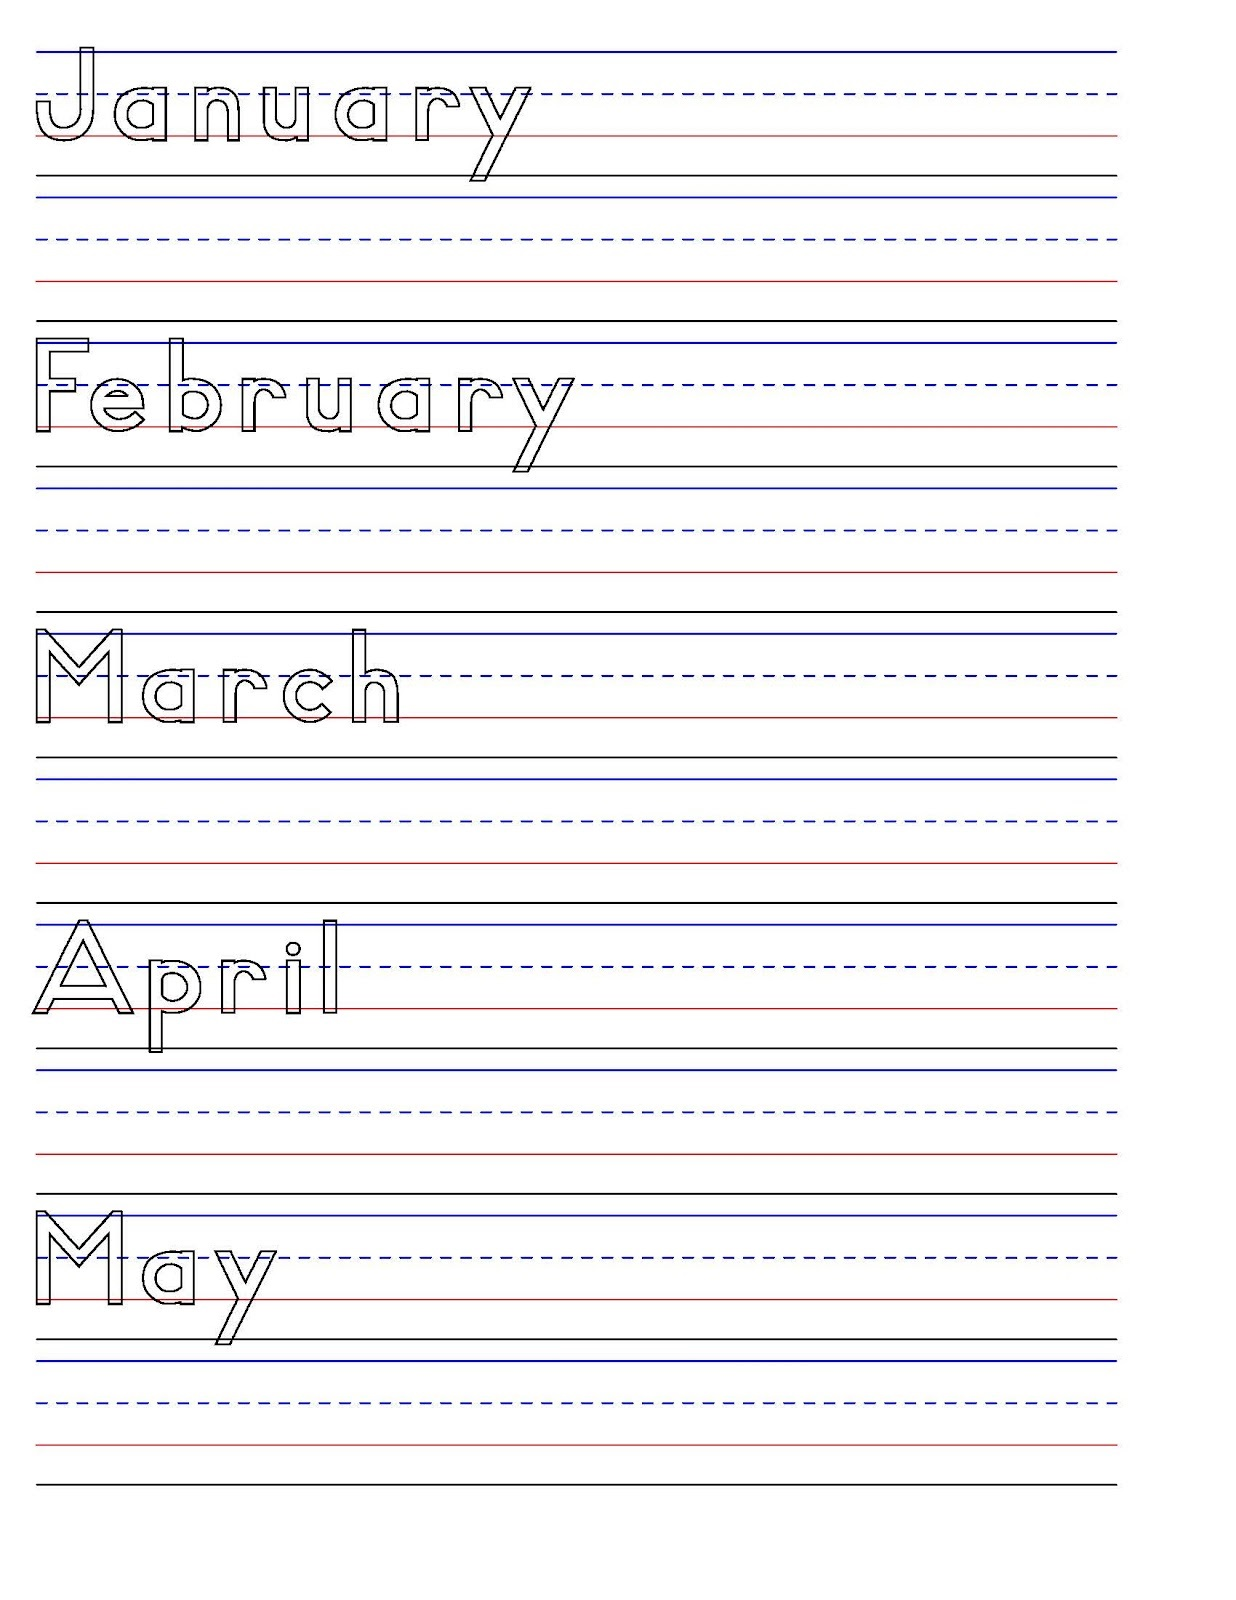 Worksheet Handwriting Sheets best printable handwriting sheets activity shelter months